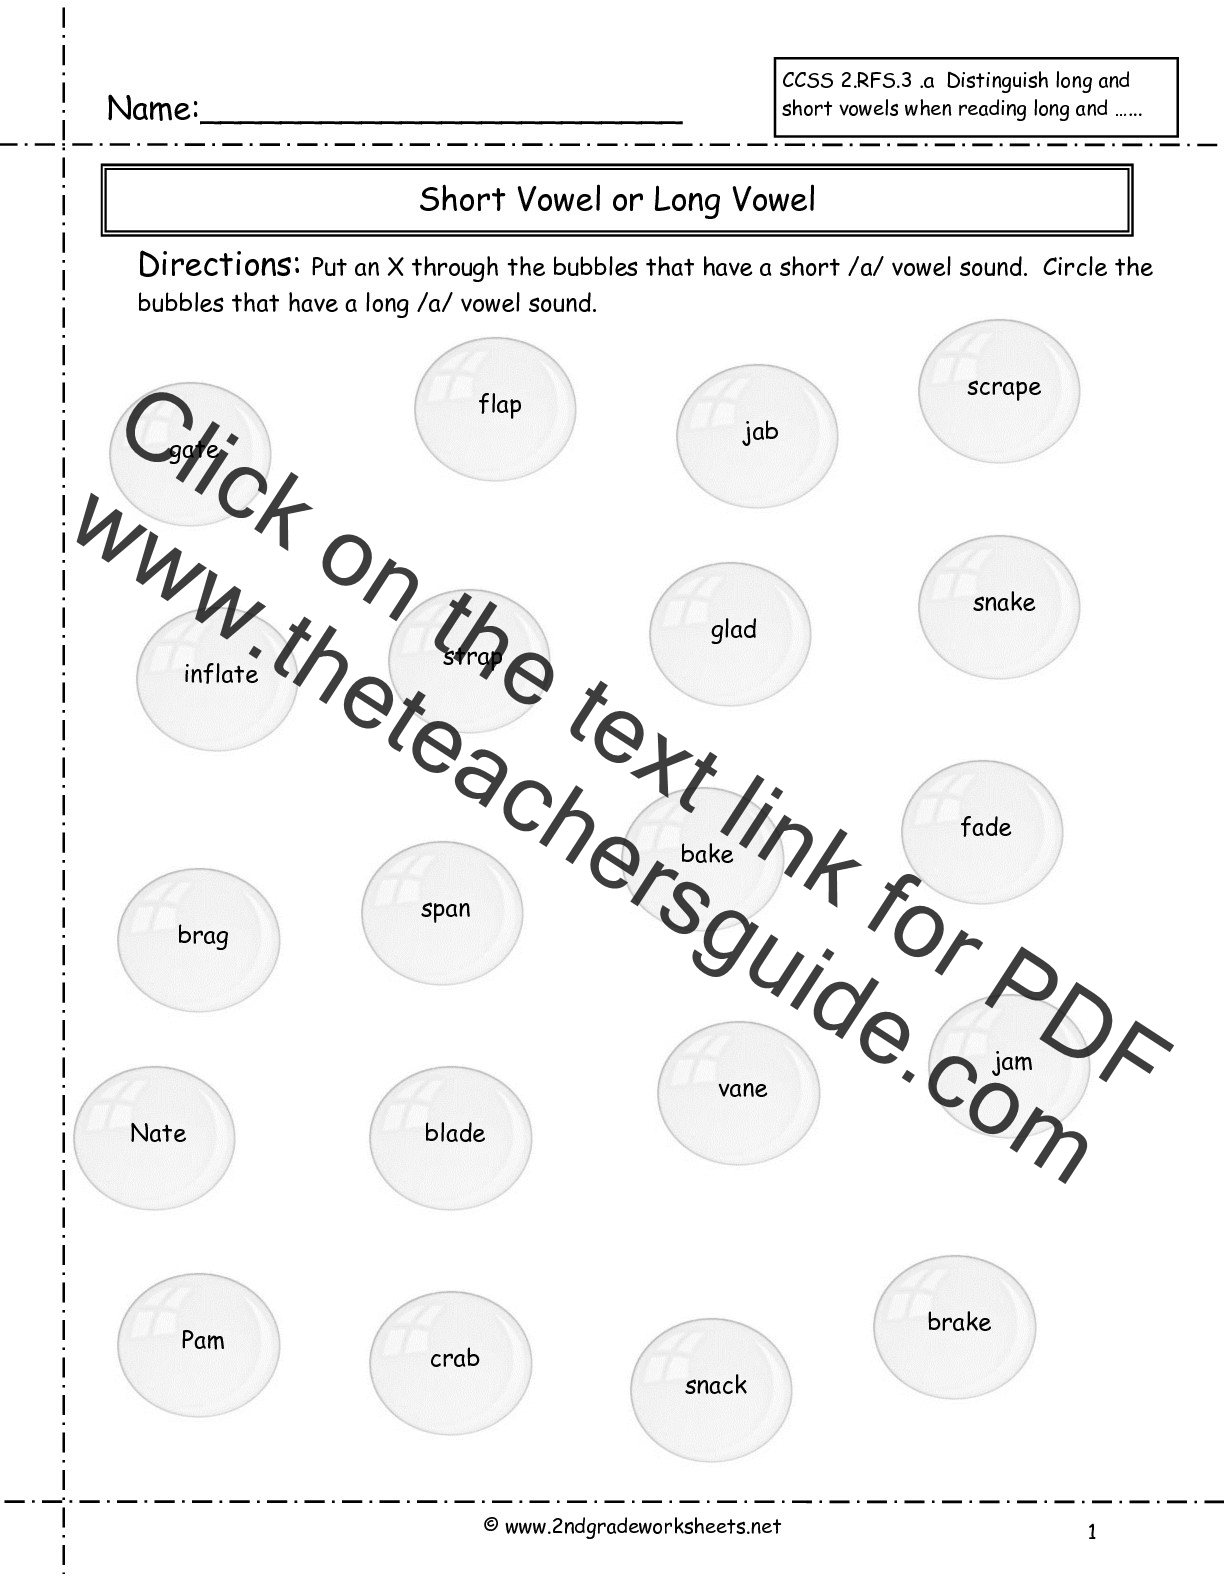 Long I Sound Worksheets Best Short E Worksheet Of And Vowel For Kids additionally  moreover  together with  further Short and Long Vowels Worksheets   Siteraven together with Long and short vowels   ESL worksheet by worldwidedan moreover Short Vowel Practice Worksheets Short Vowel Kindergarten Worksheets likewise Long U Phonics Worksheets Sound Worksheet Vowel E as well  further  additionally long e worksheets for second grade likewise Short Vowel E Worksheets The Letter E Worksheets Short Vowel Sounds further Silent E Worksheets For First Grade 2 Short A Sound And Long Vowels in addition Kindergarten Short Vowel Worksheets For Image Free Long Collection also Second Grade Phonics Worksheets and Flashcards moreover . on long and short vowel worksheets